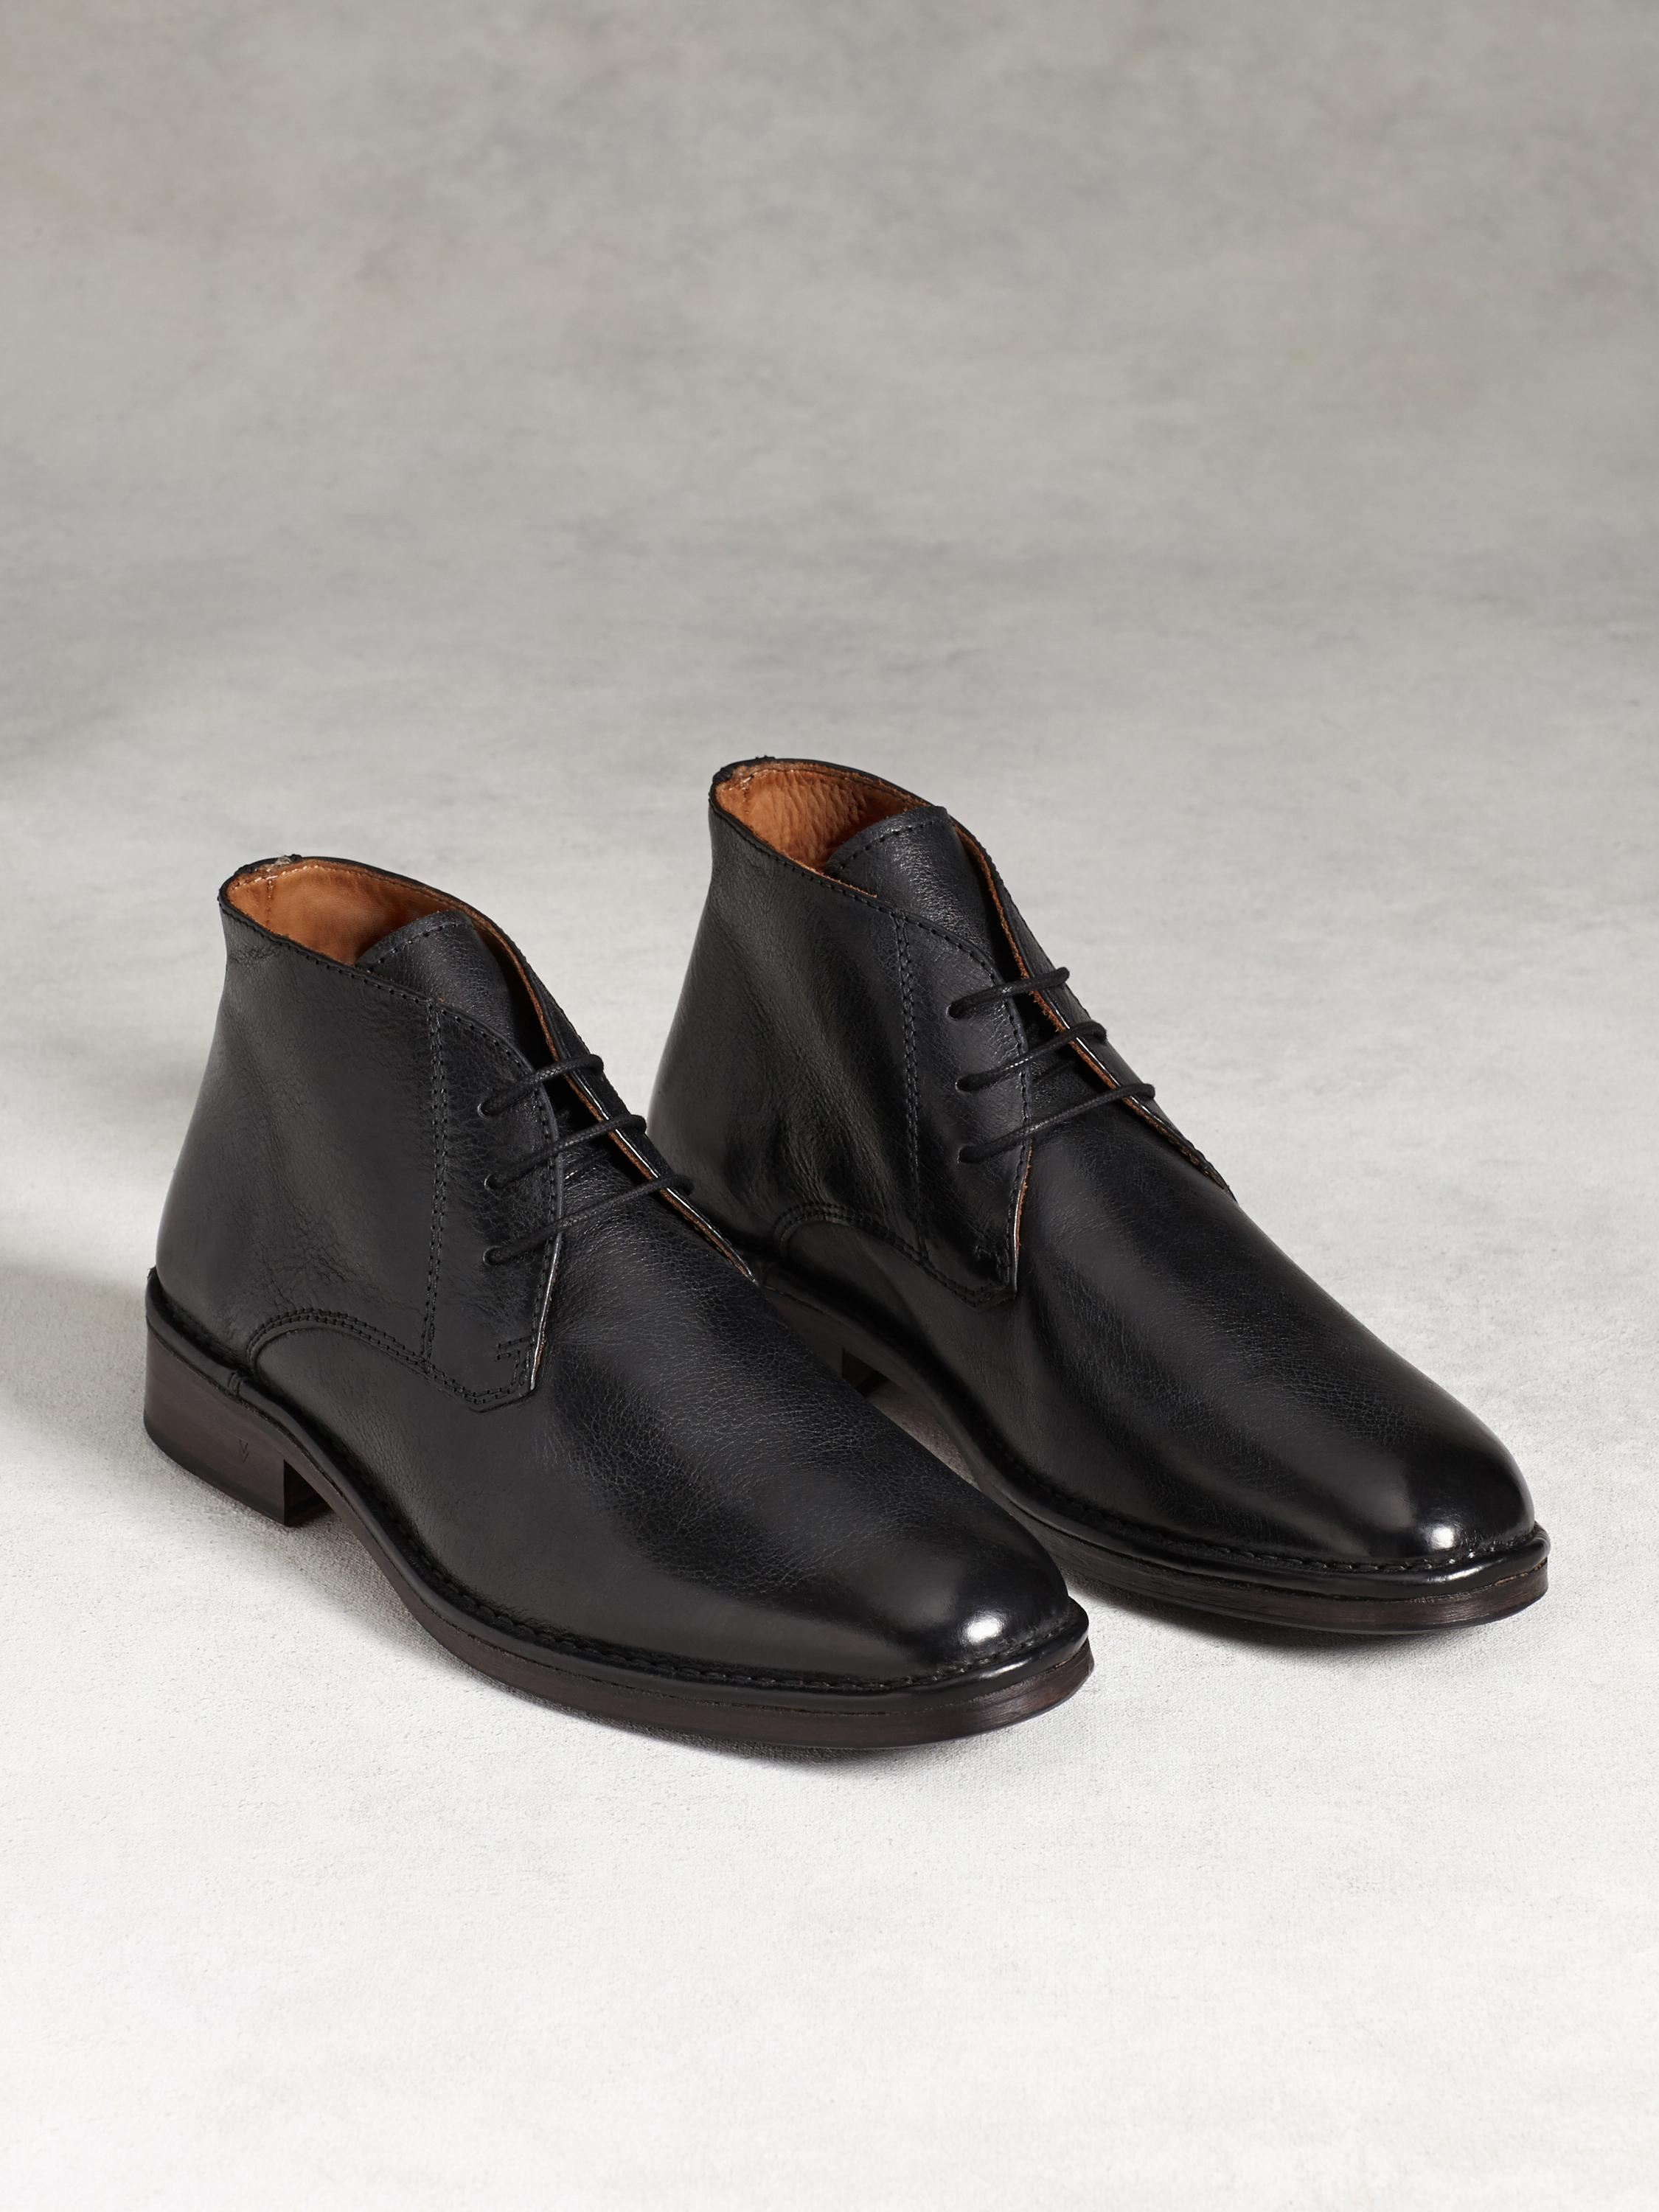 Mercer Chukka Boot